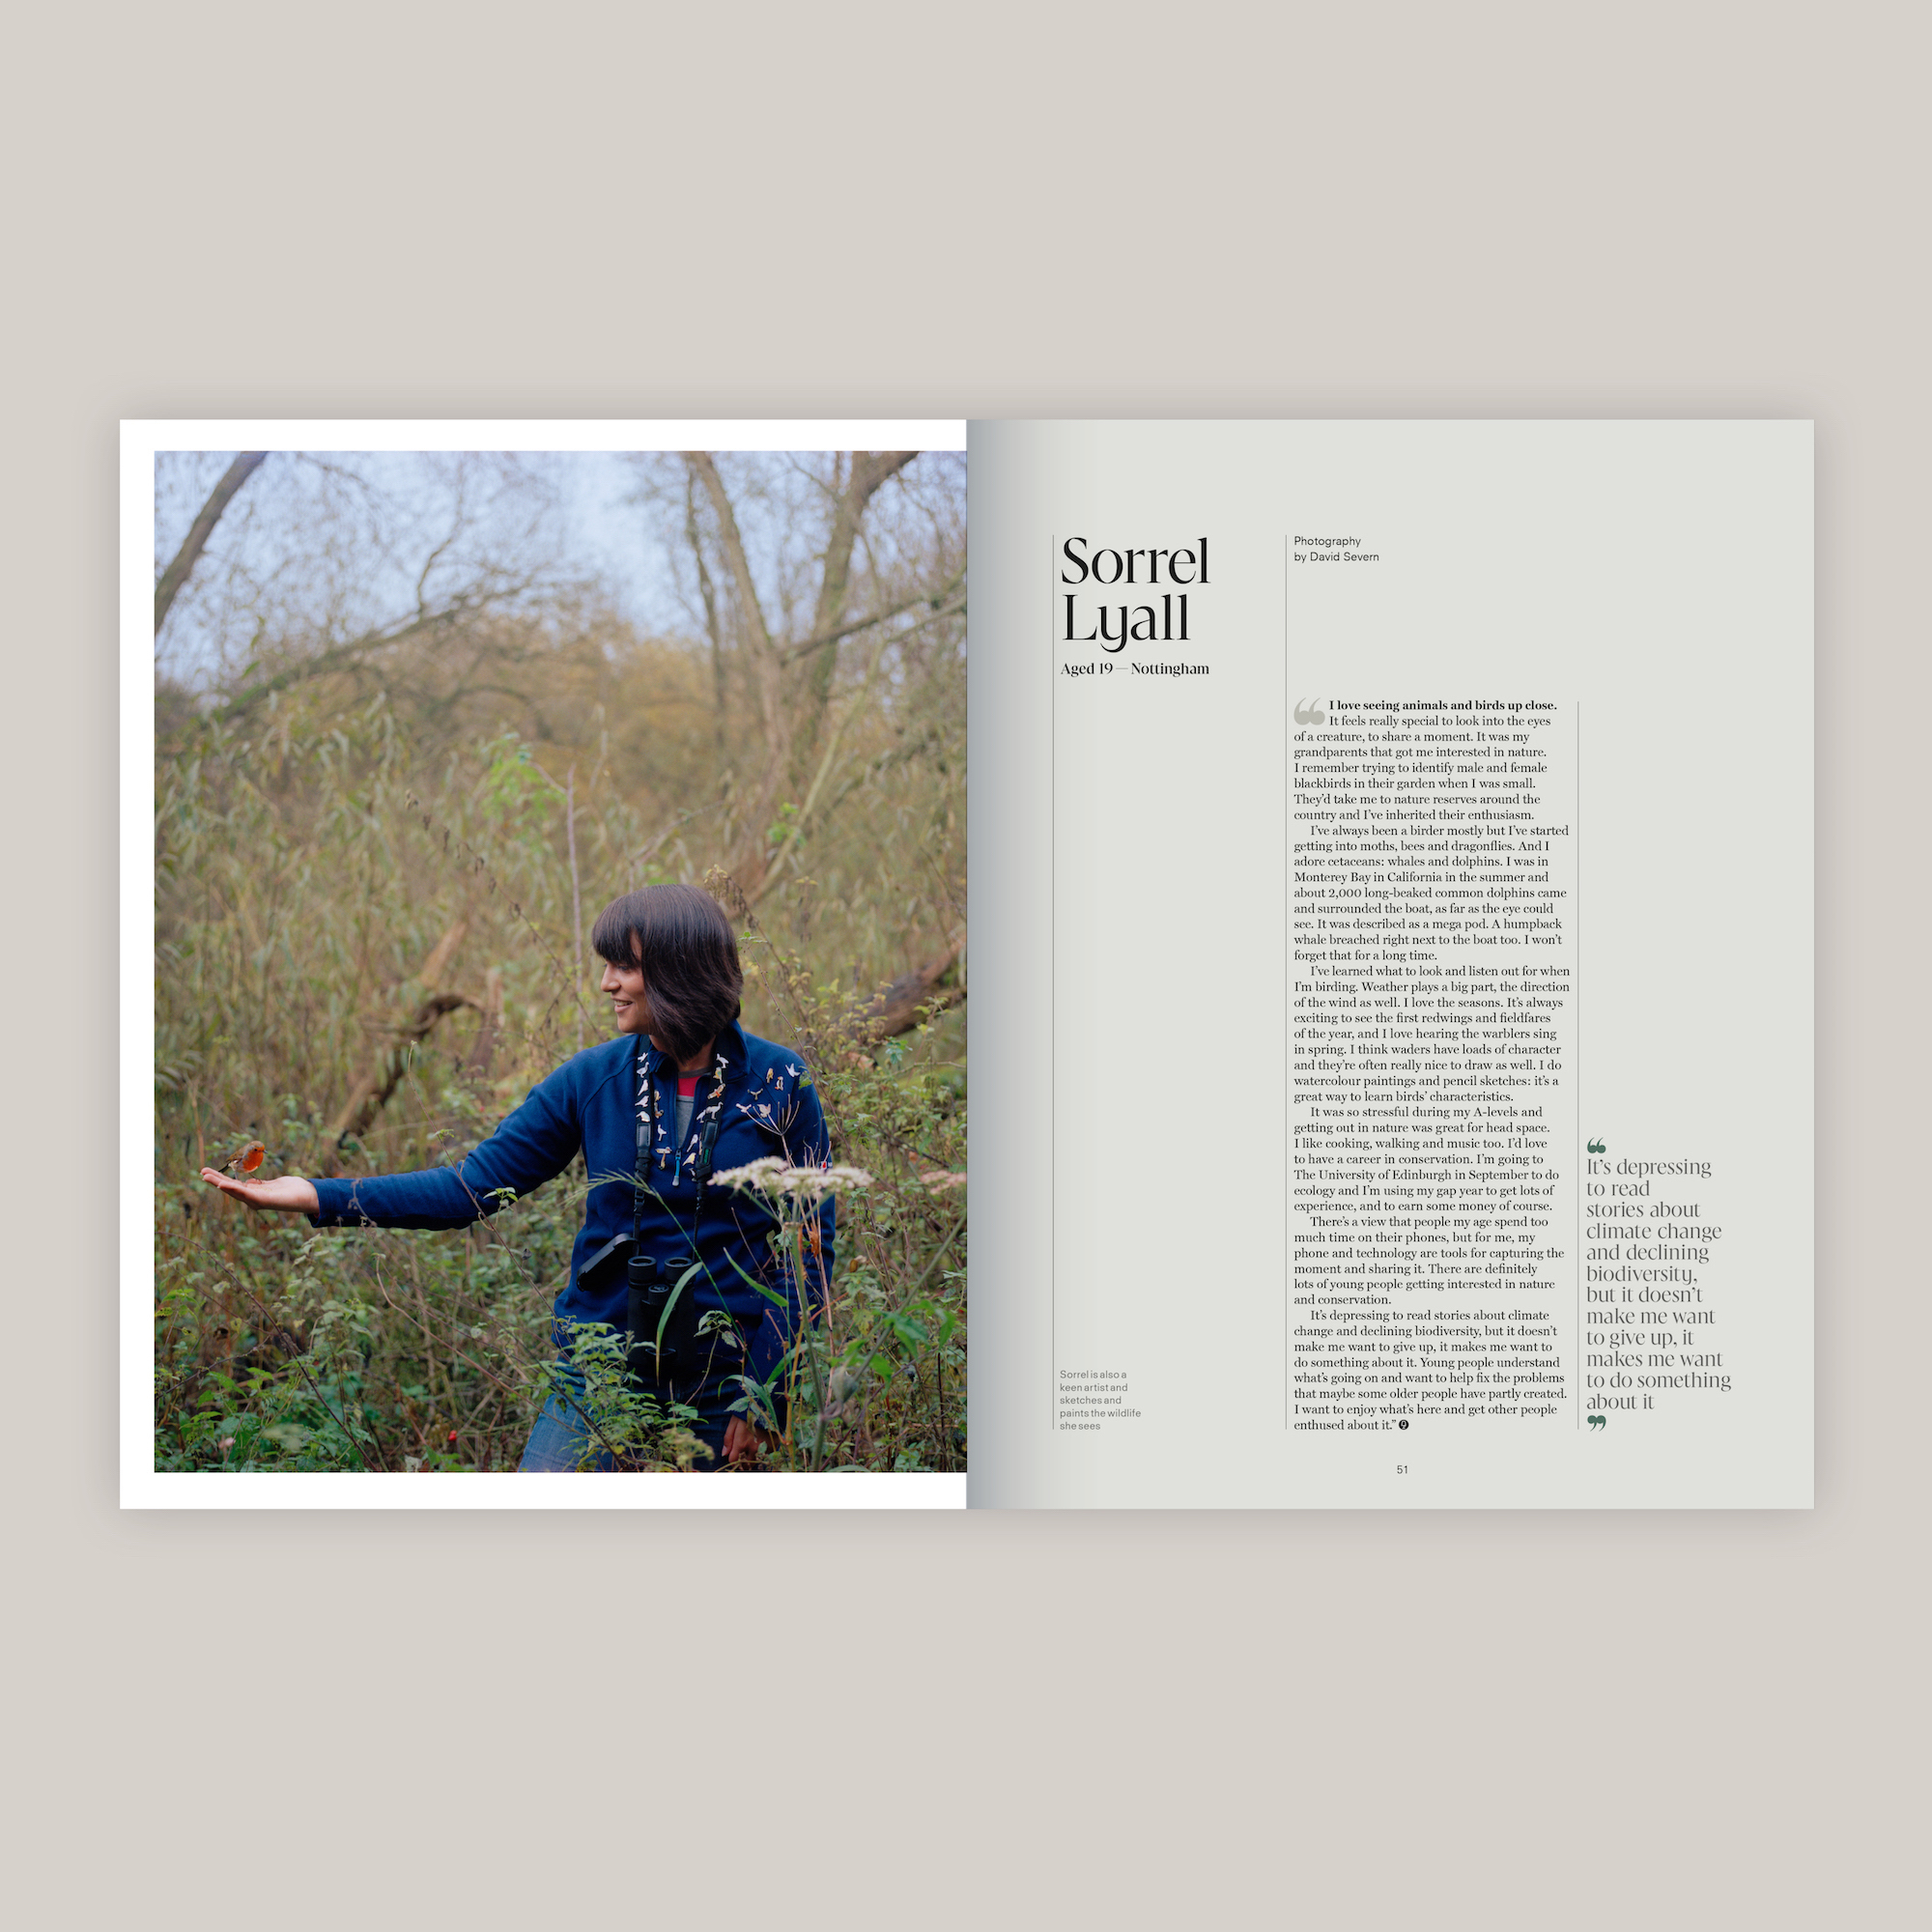 The Young Conservationists, Positive News magazine tearsheet.